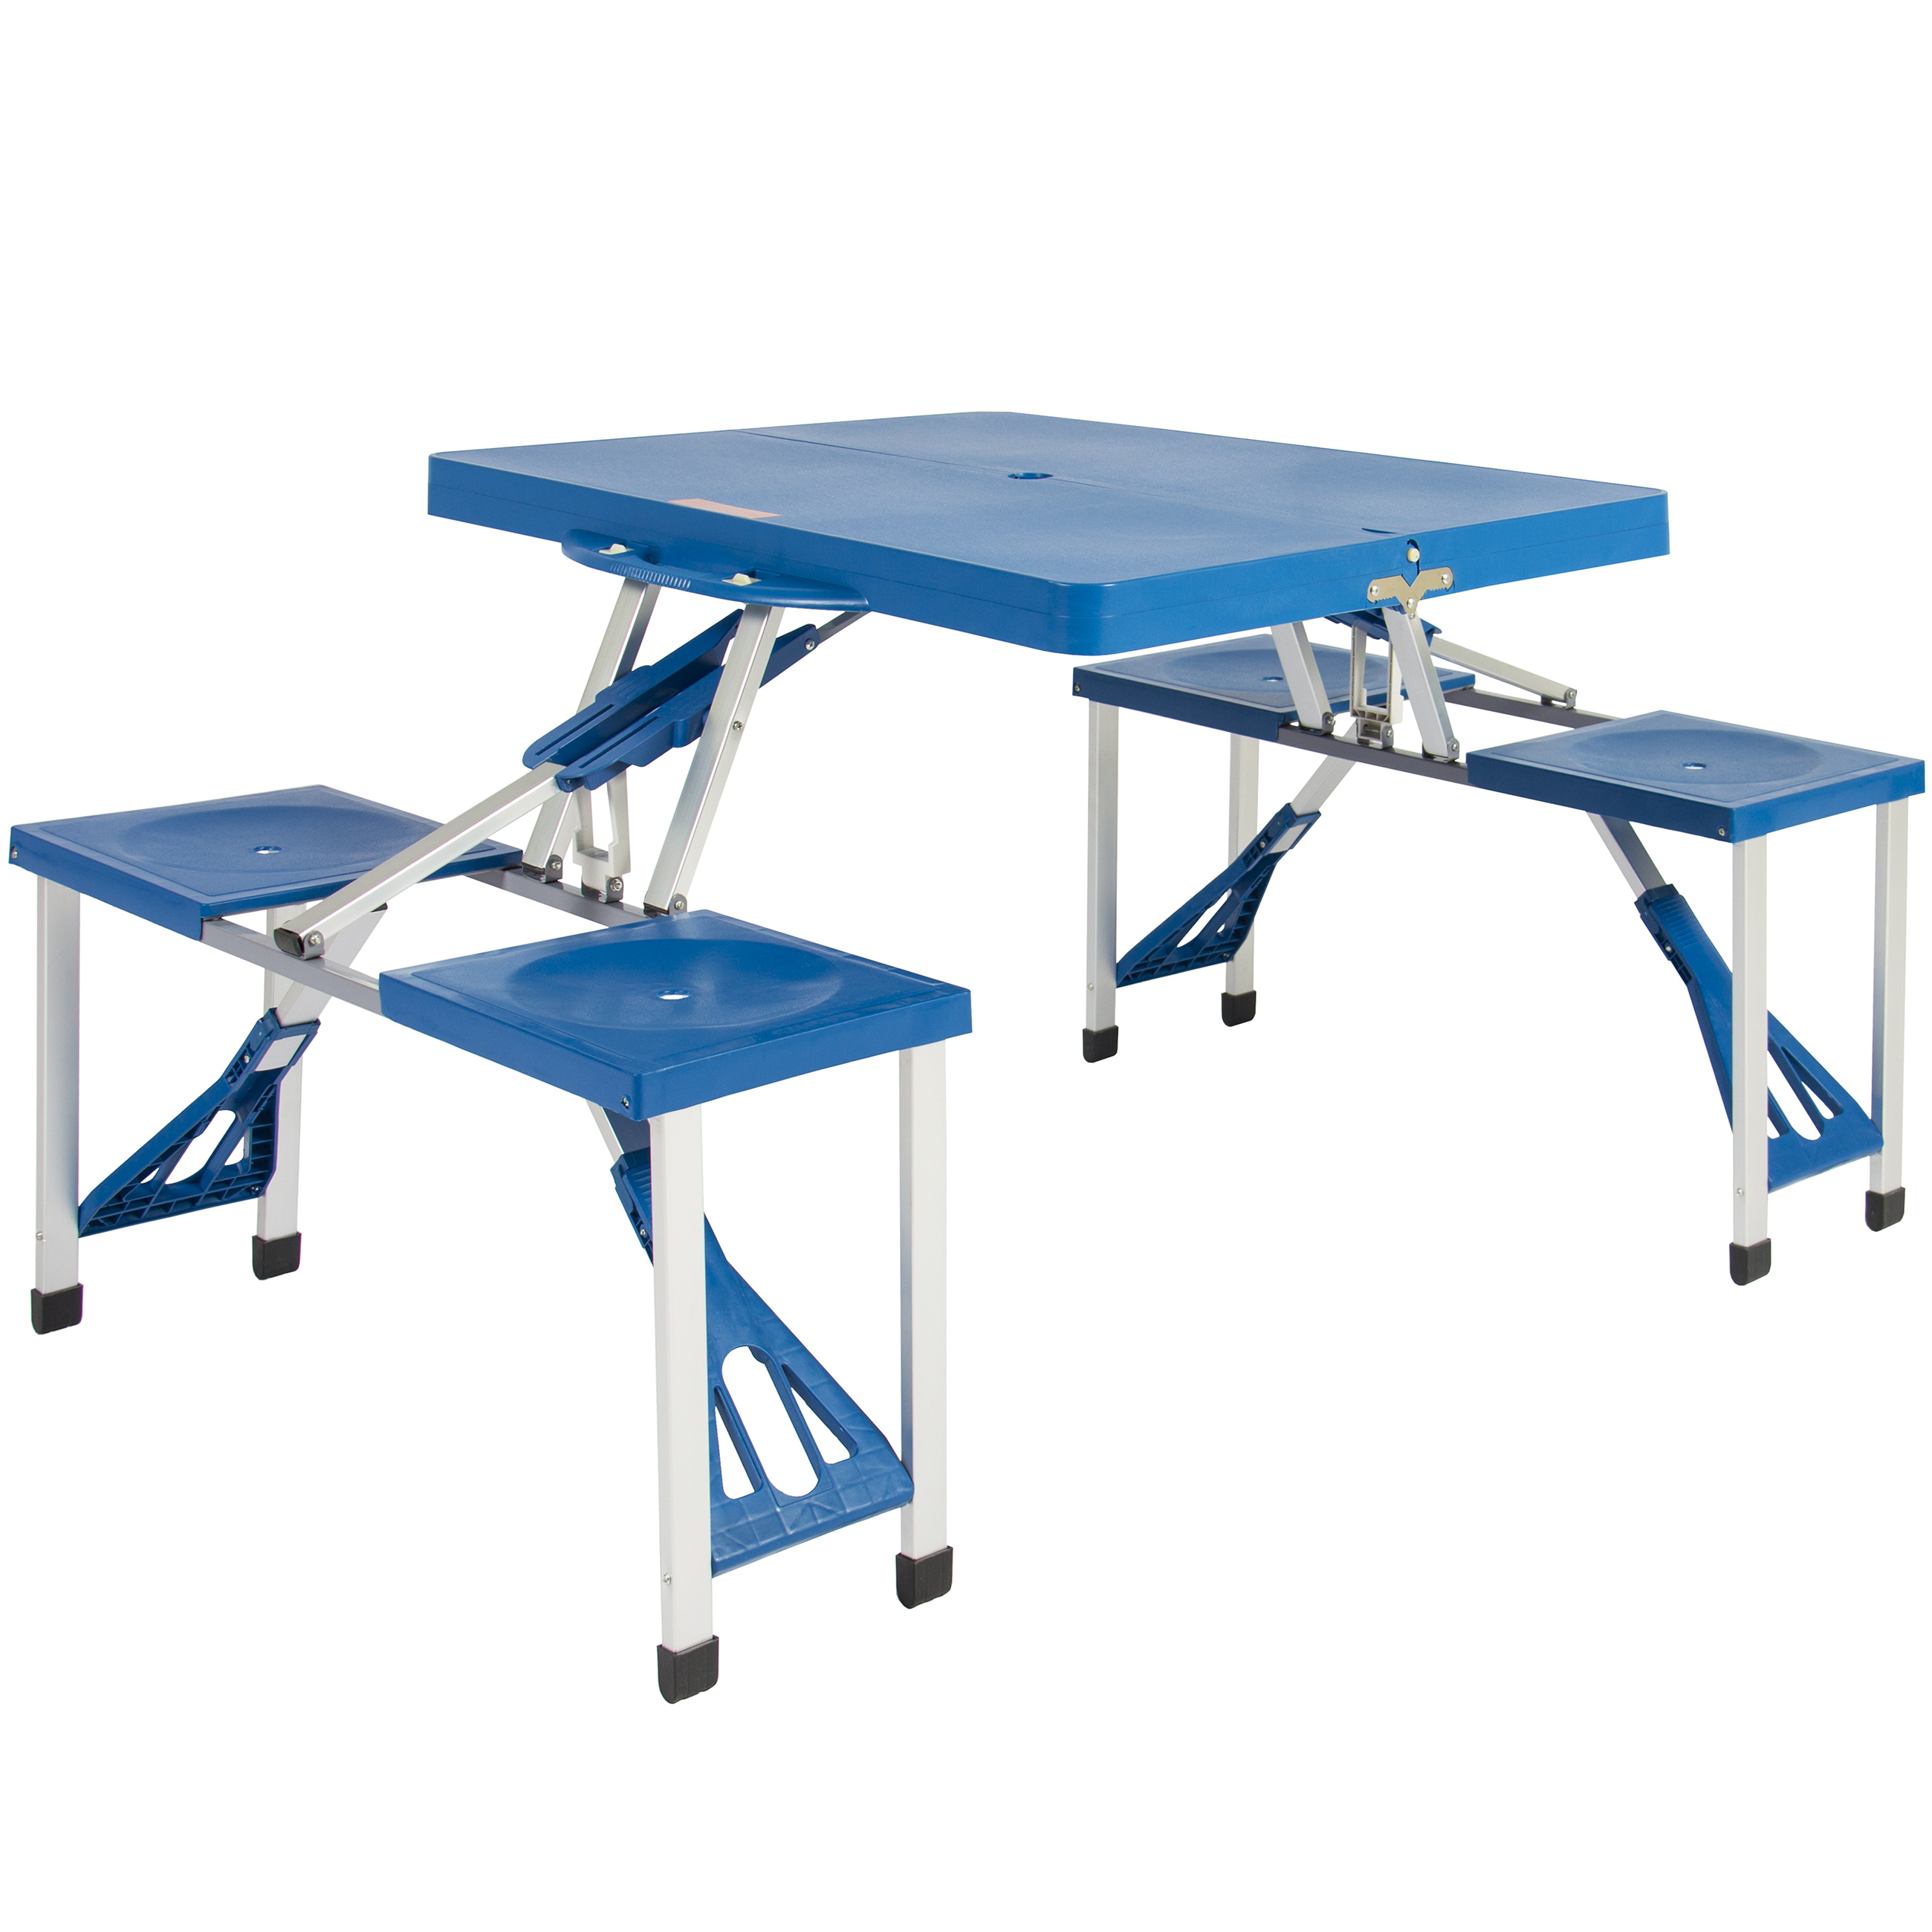 Best choice products outdoor portable plastic folding picnic table best choice products outdoor portable plastic folding picnic table camping w 4 seats walmart watchthetrailerfo